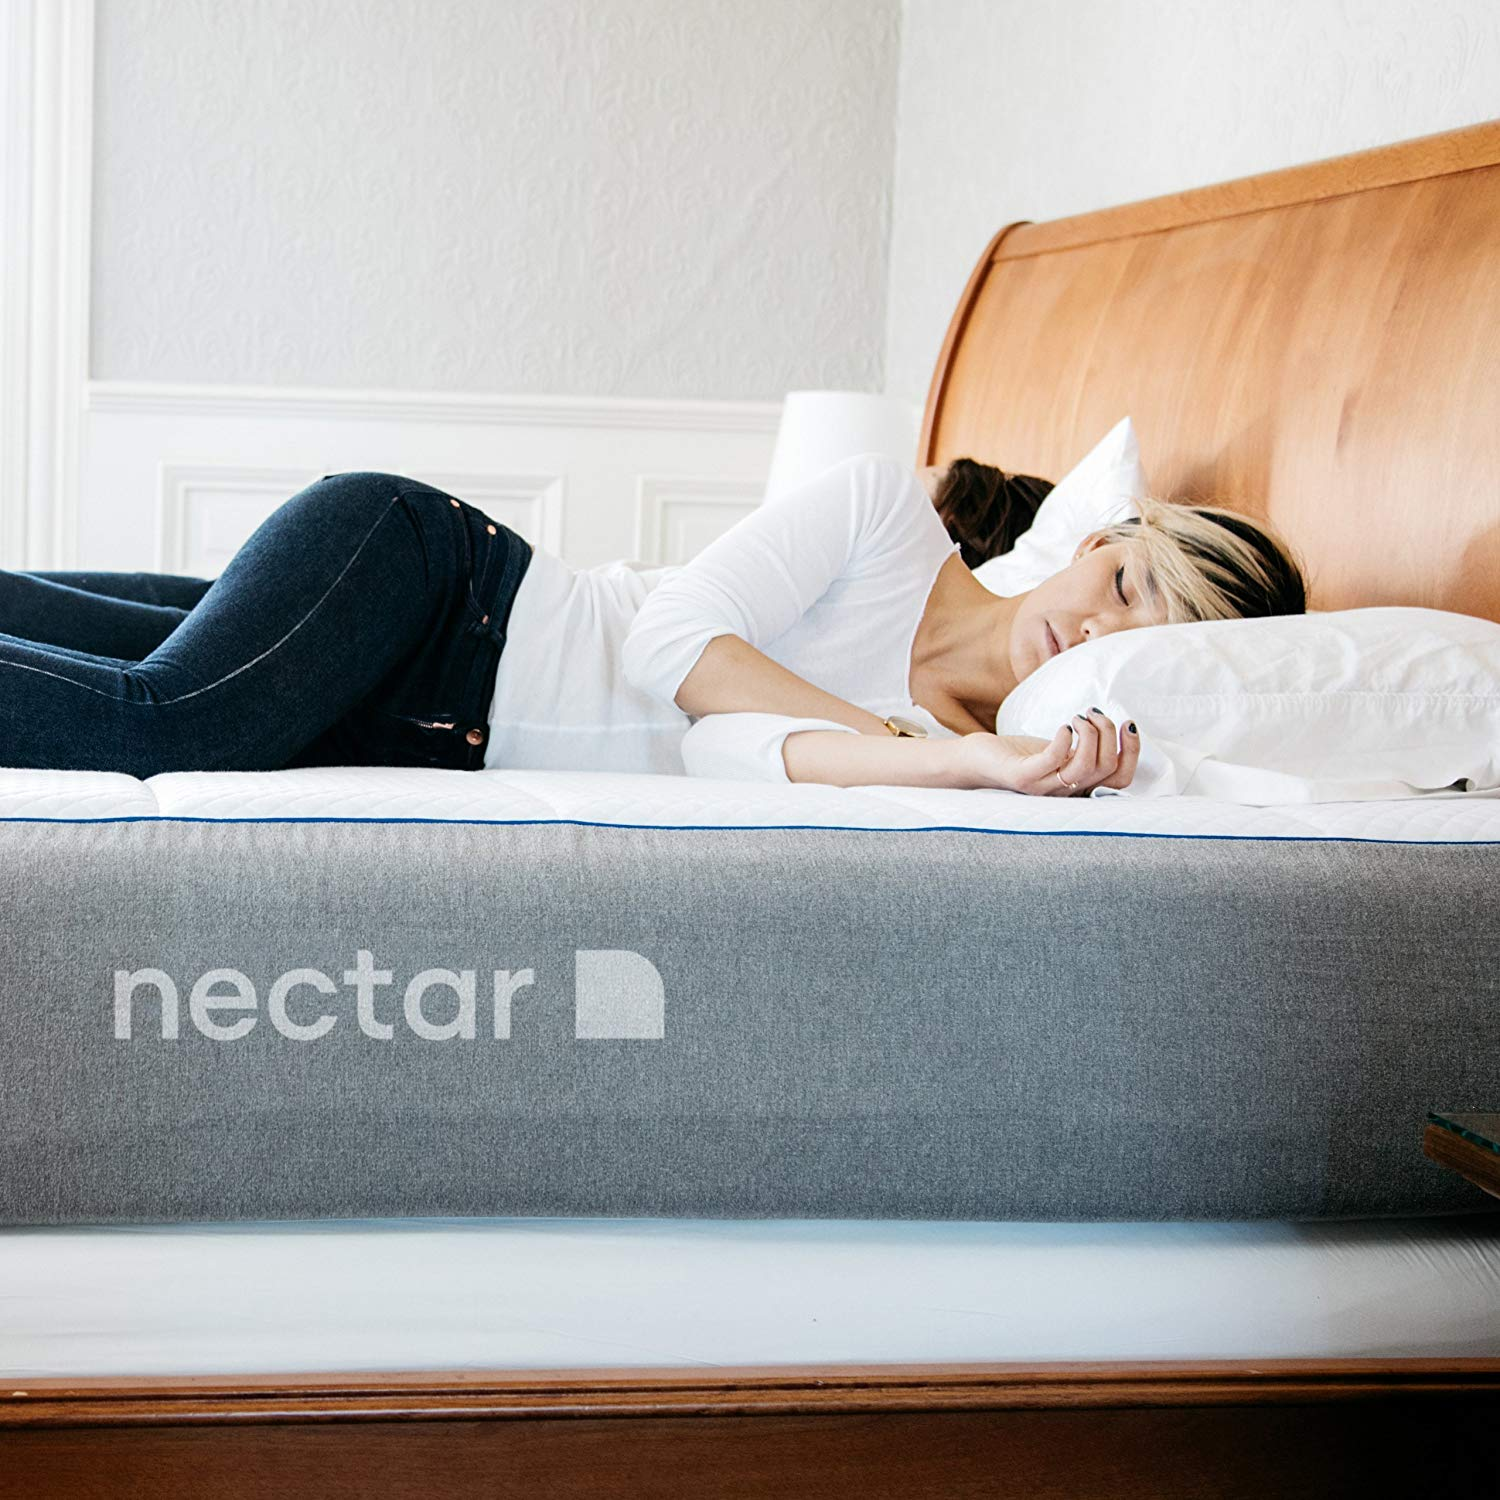 Woman sleeping on Nectar mattress